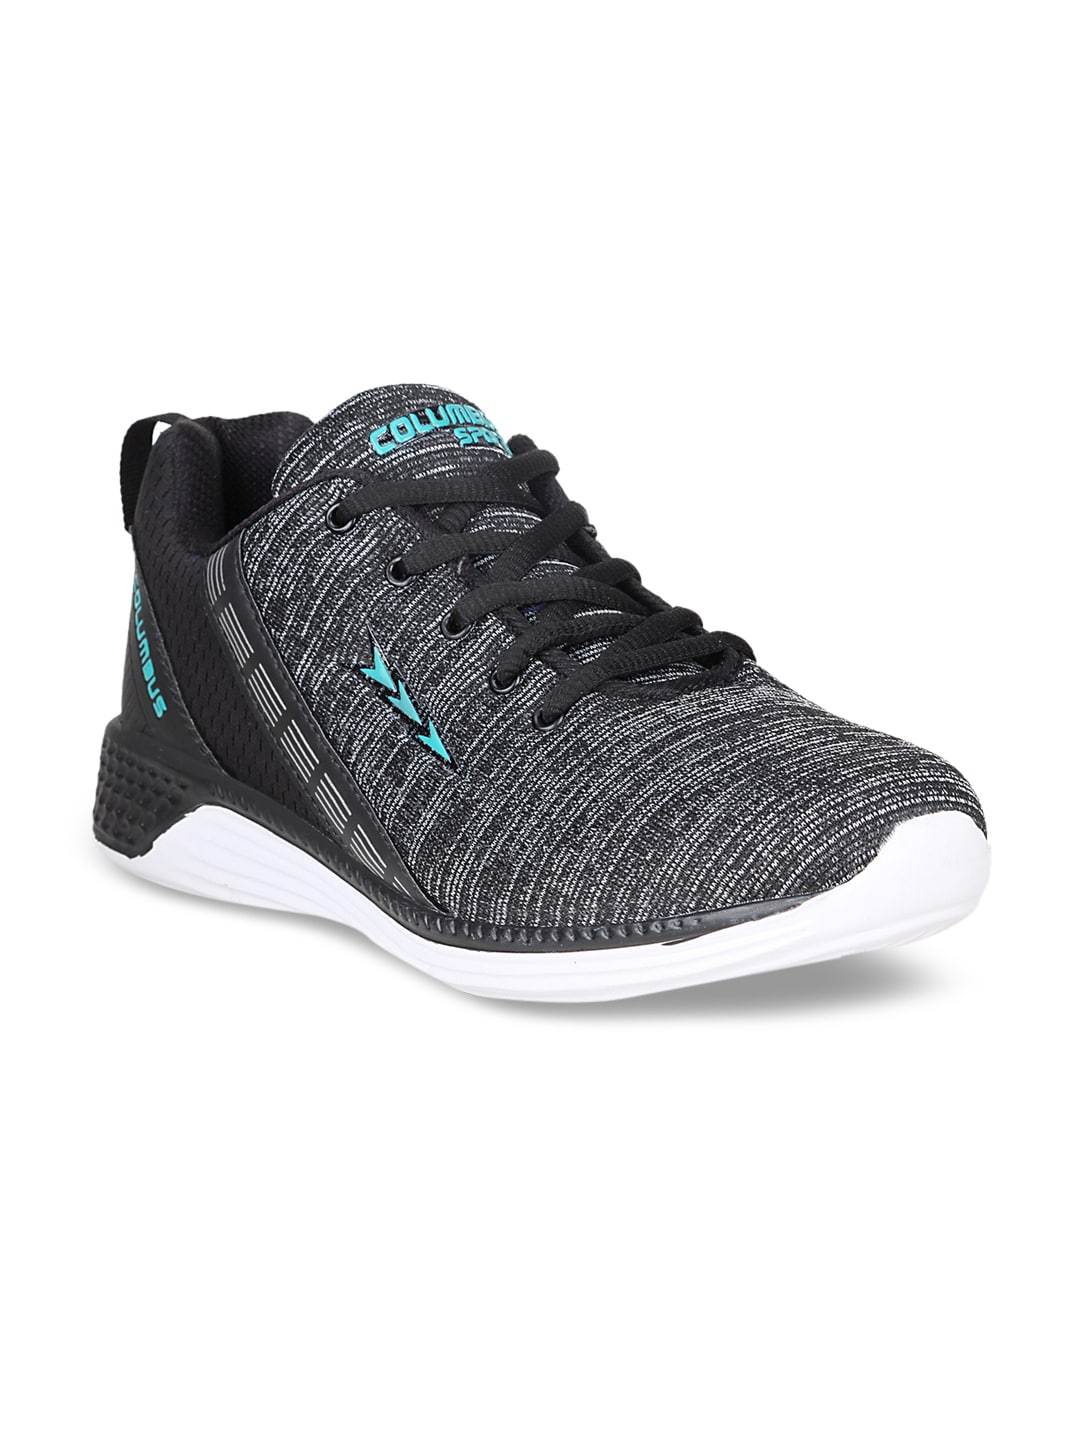 076578811b66b Sports Shoes for Men - Buy Men Sports Shoes Online in India - Myntra